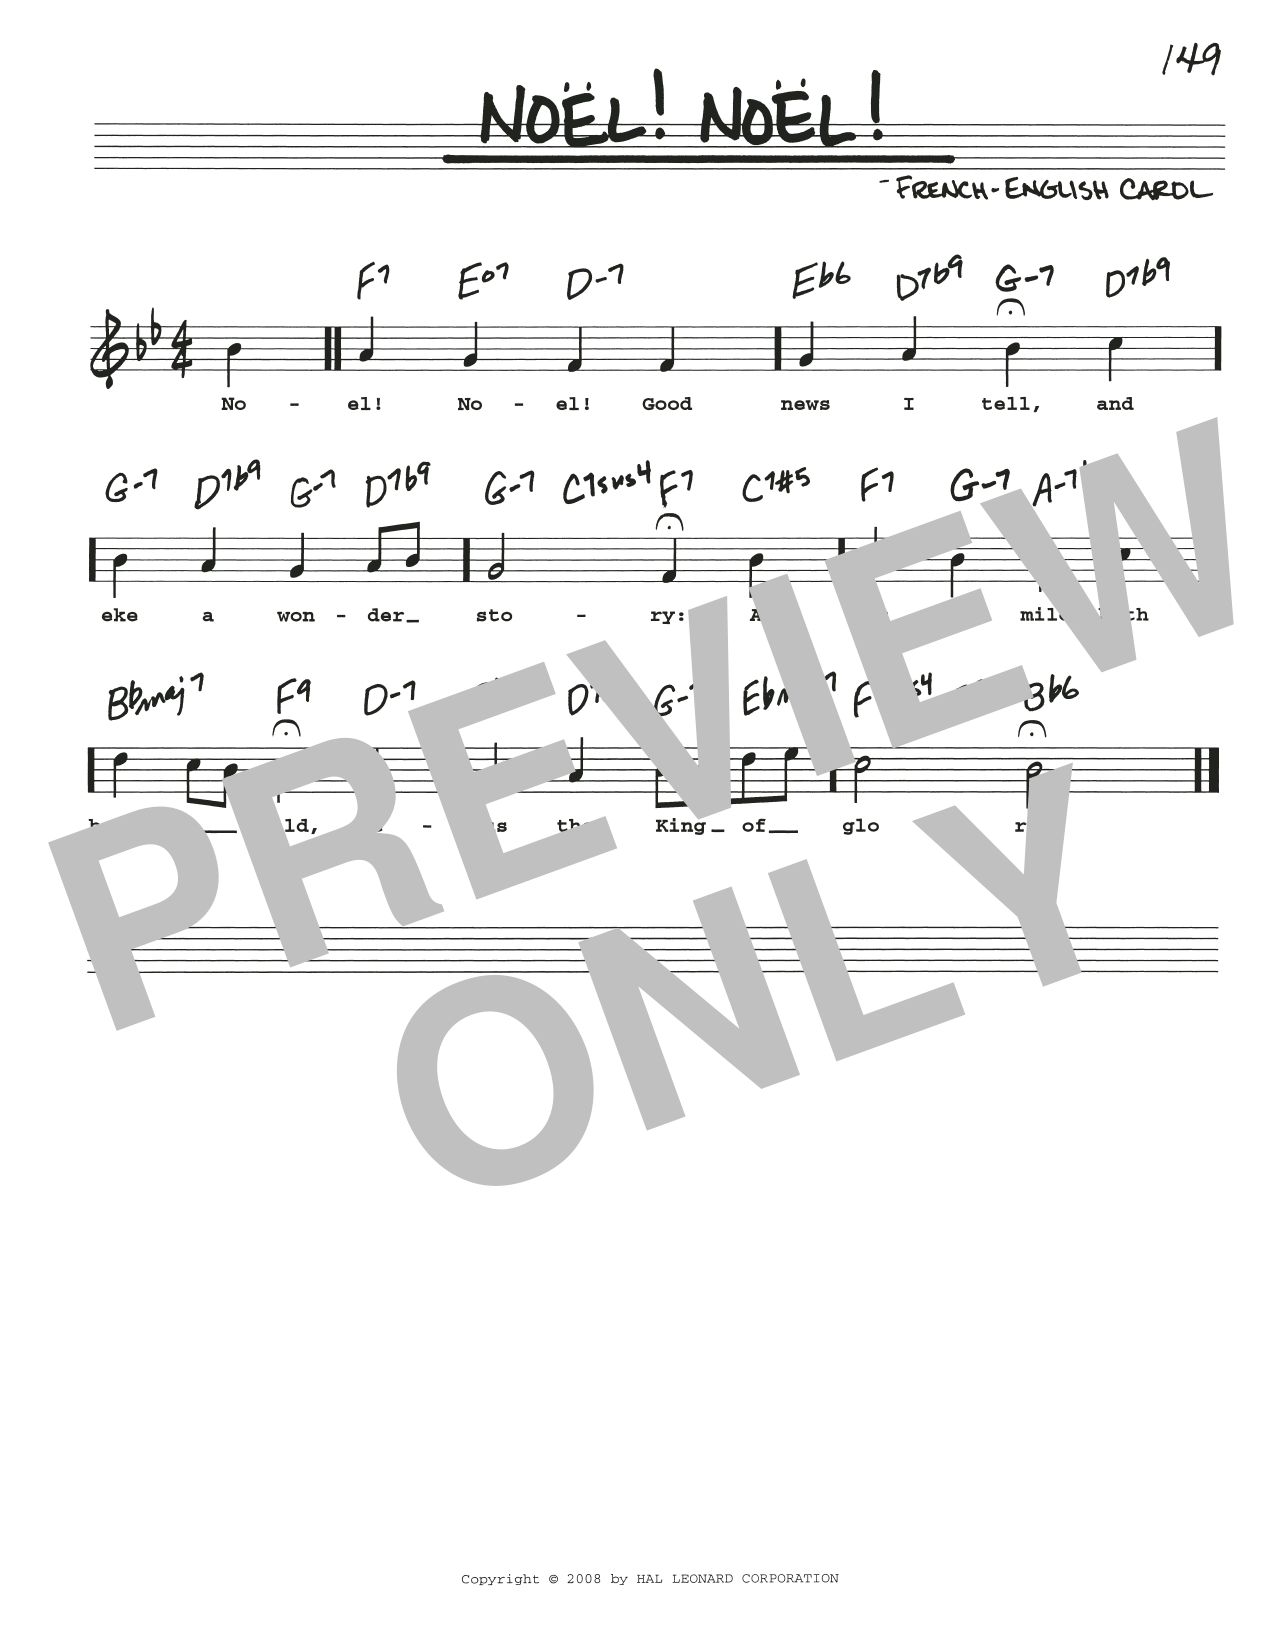 Sheet Music Digital Files To Print - Licensed Real Book - Melody ...